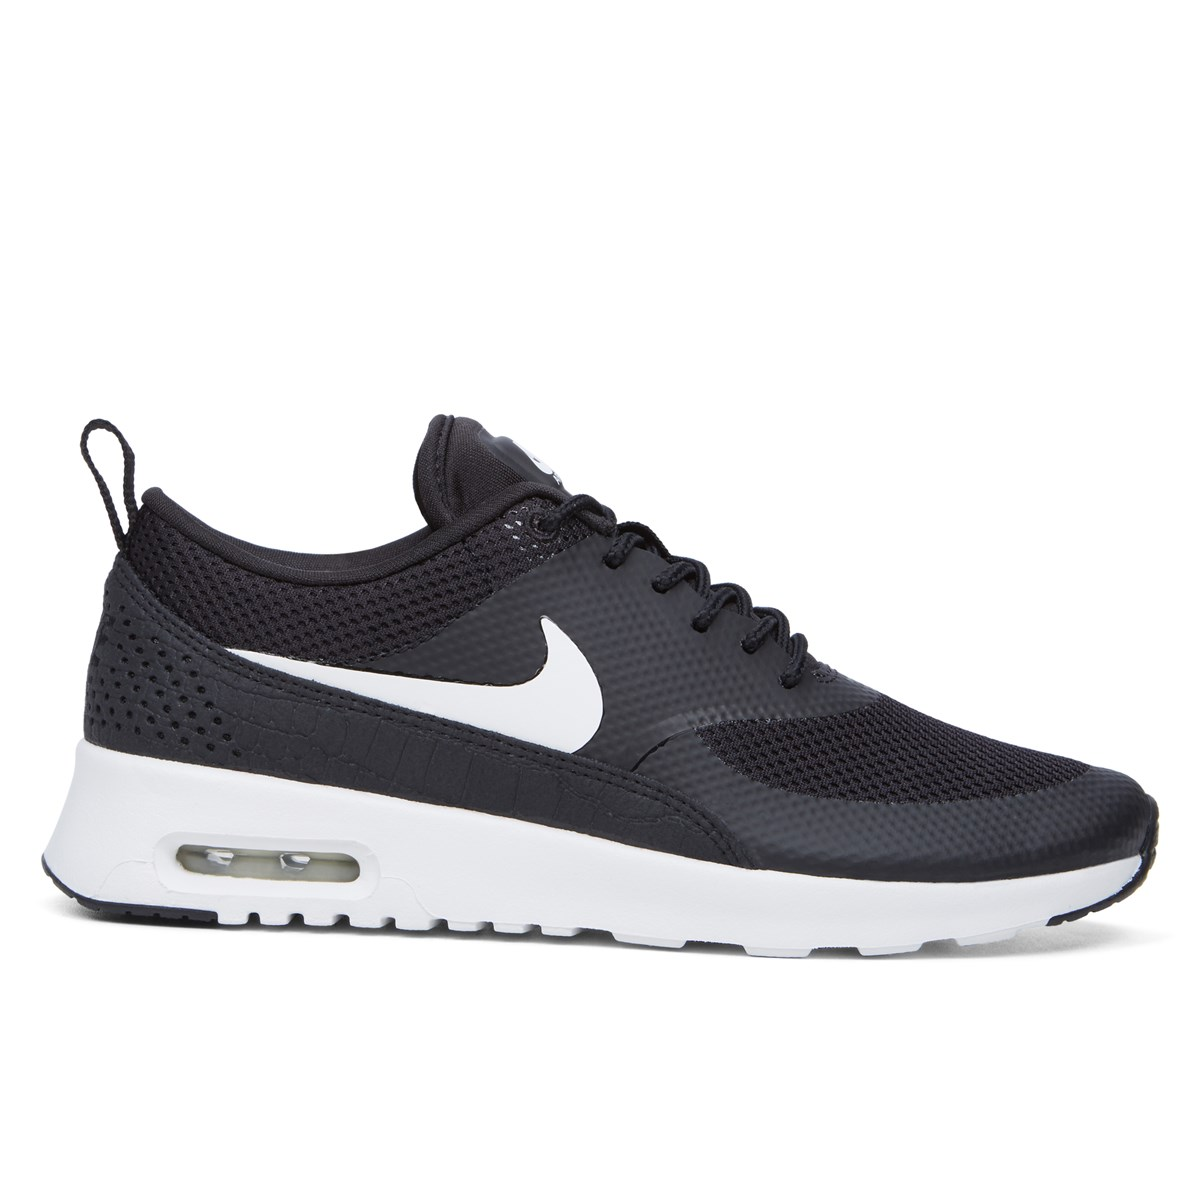 hot sale online new cheap usa cheap sale Women's Air Max Thea Black Sneaker